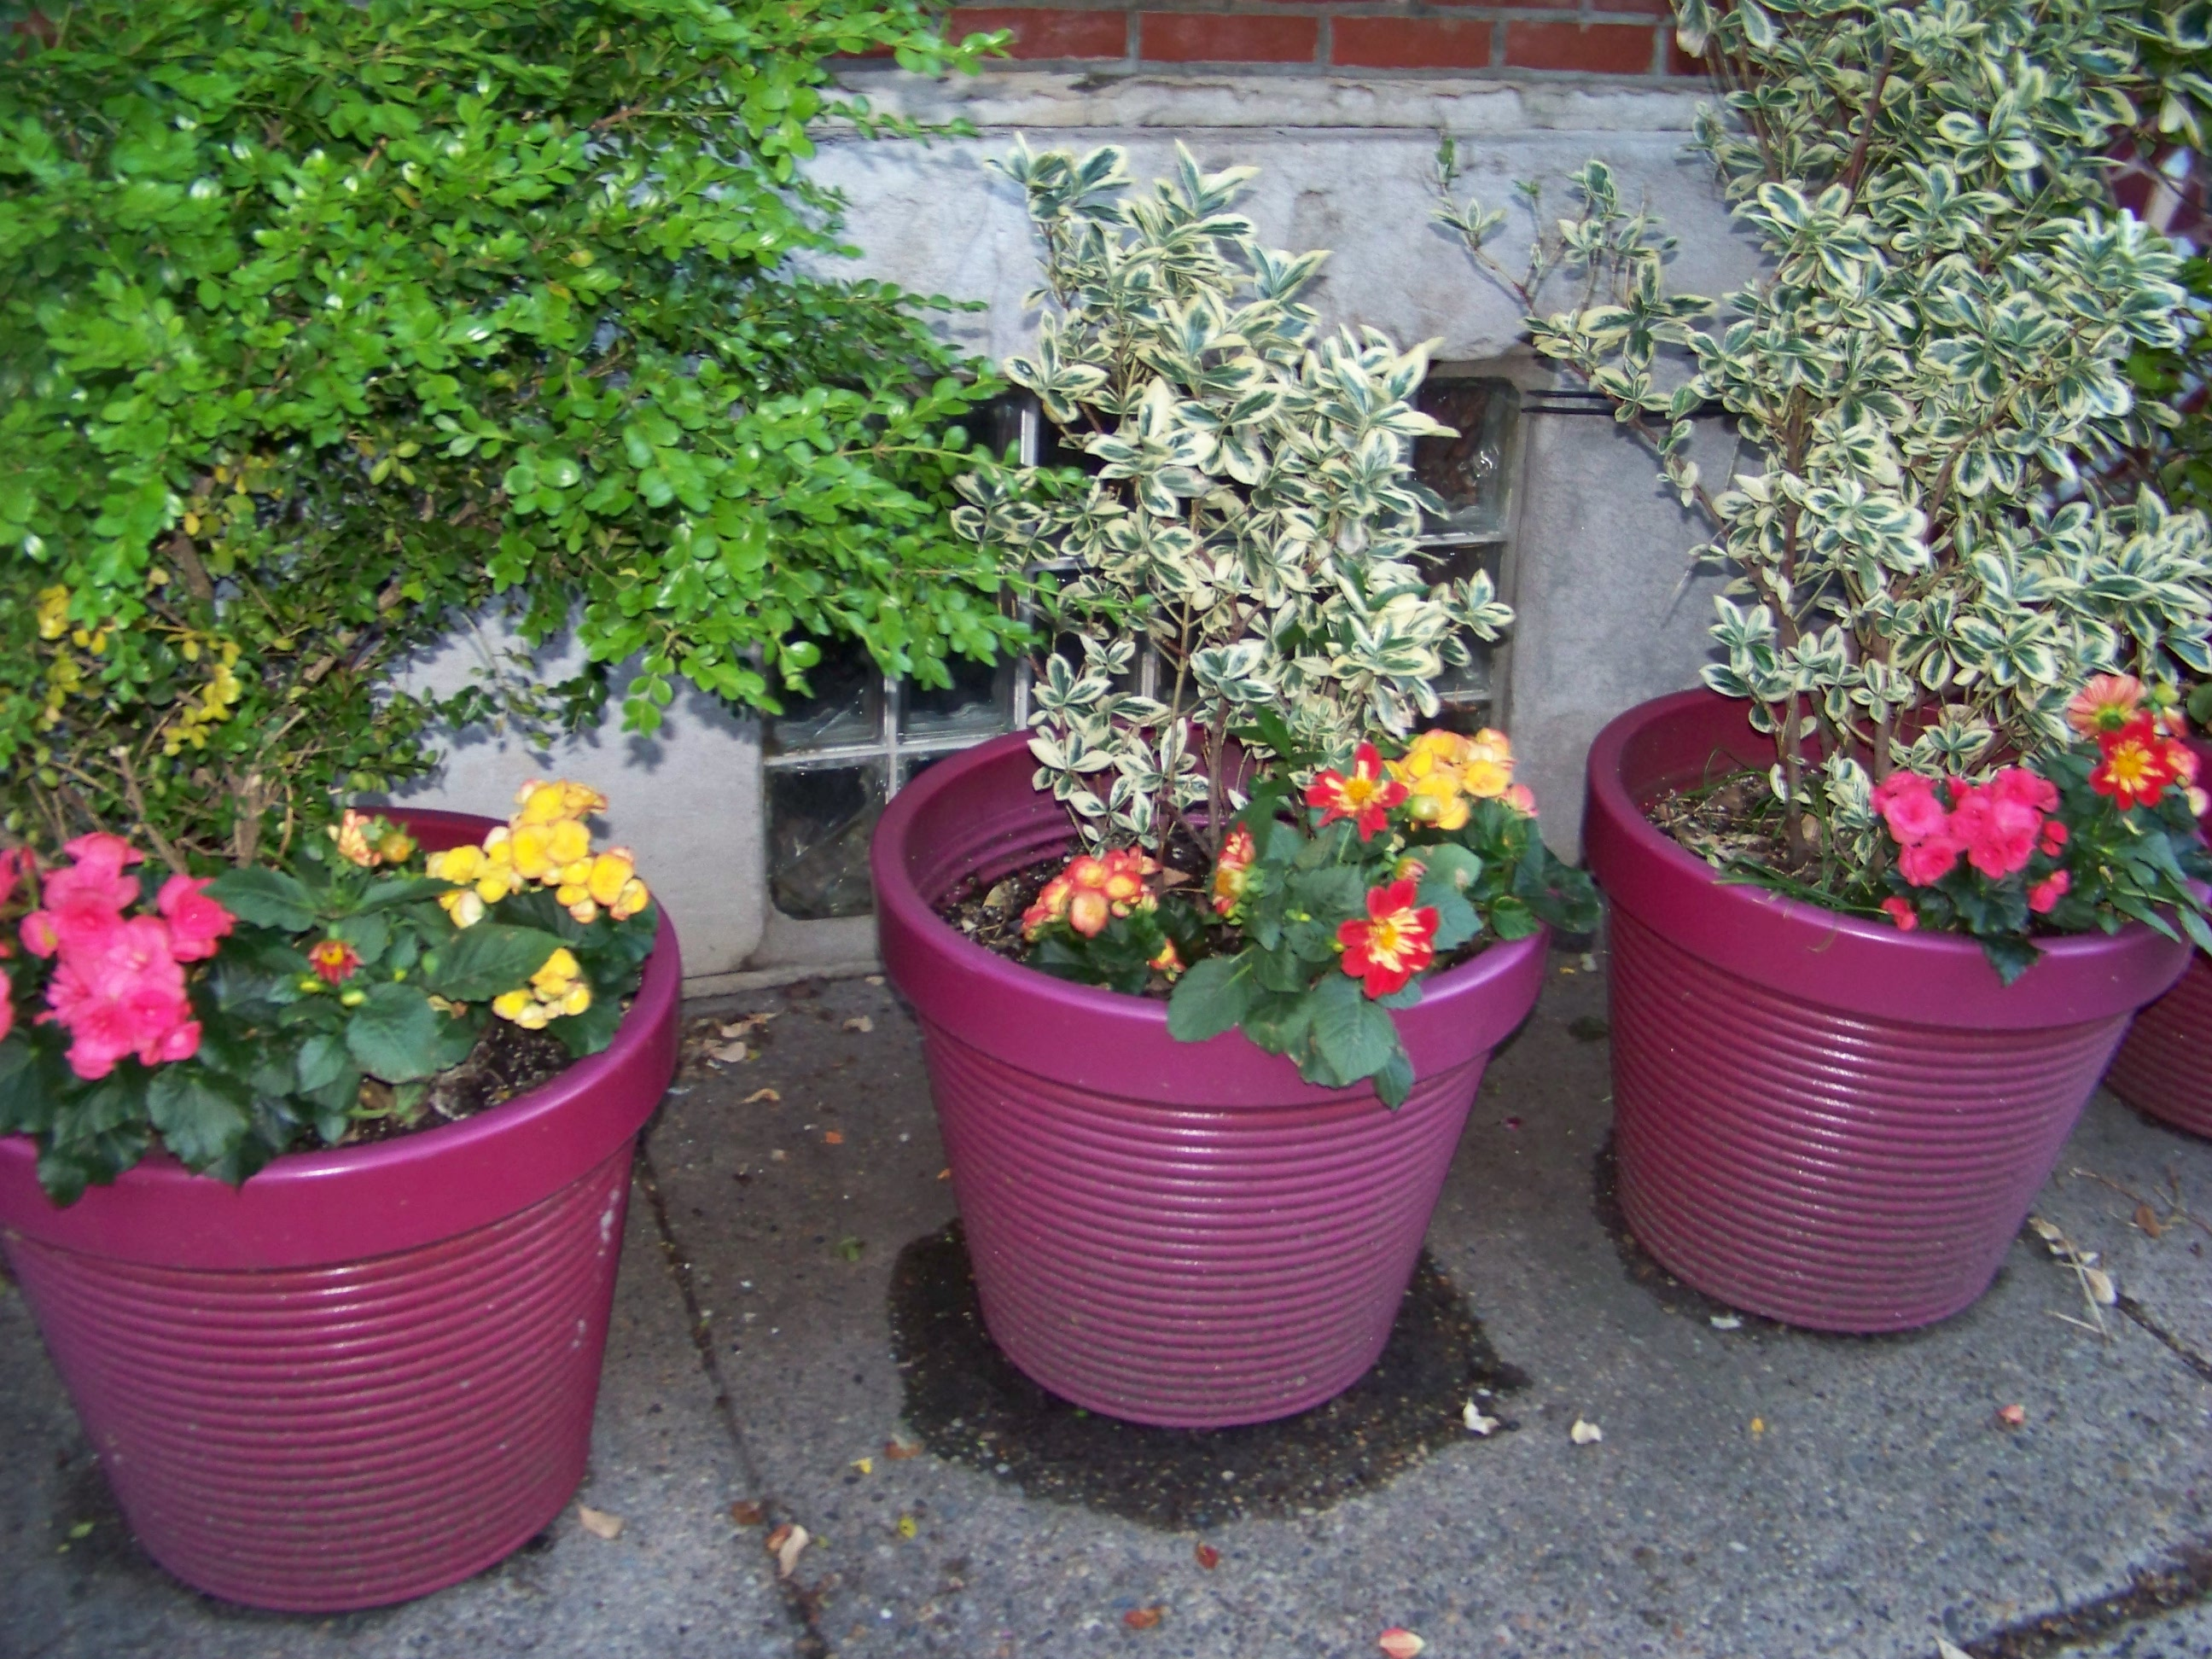 Decorating With Flowers in Urban Areas Where There is No Front Yard